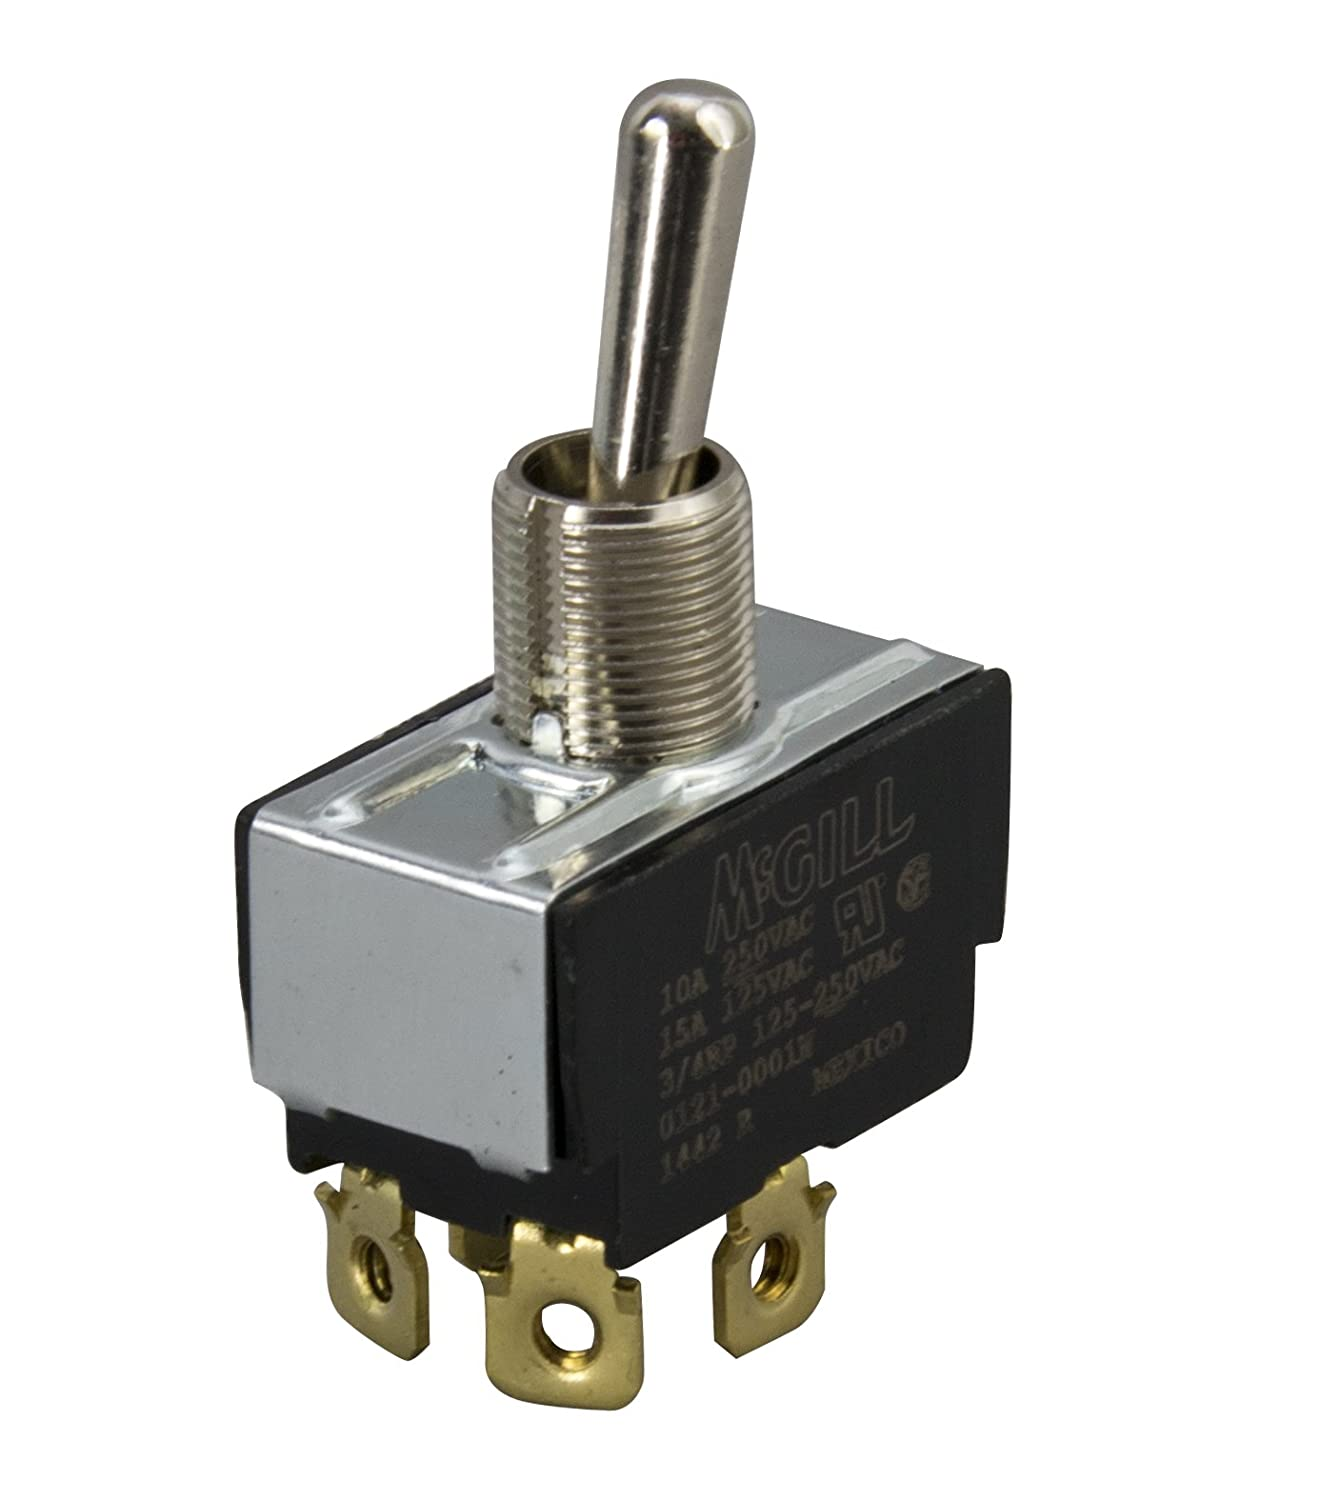 MCGILL 01210001N DPST, Screw Terminal, Toggle Switch